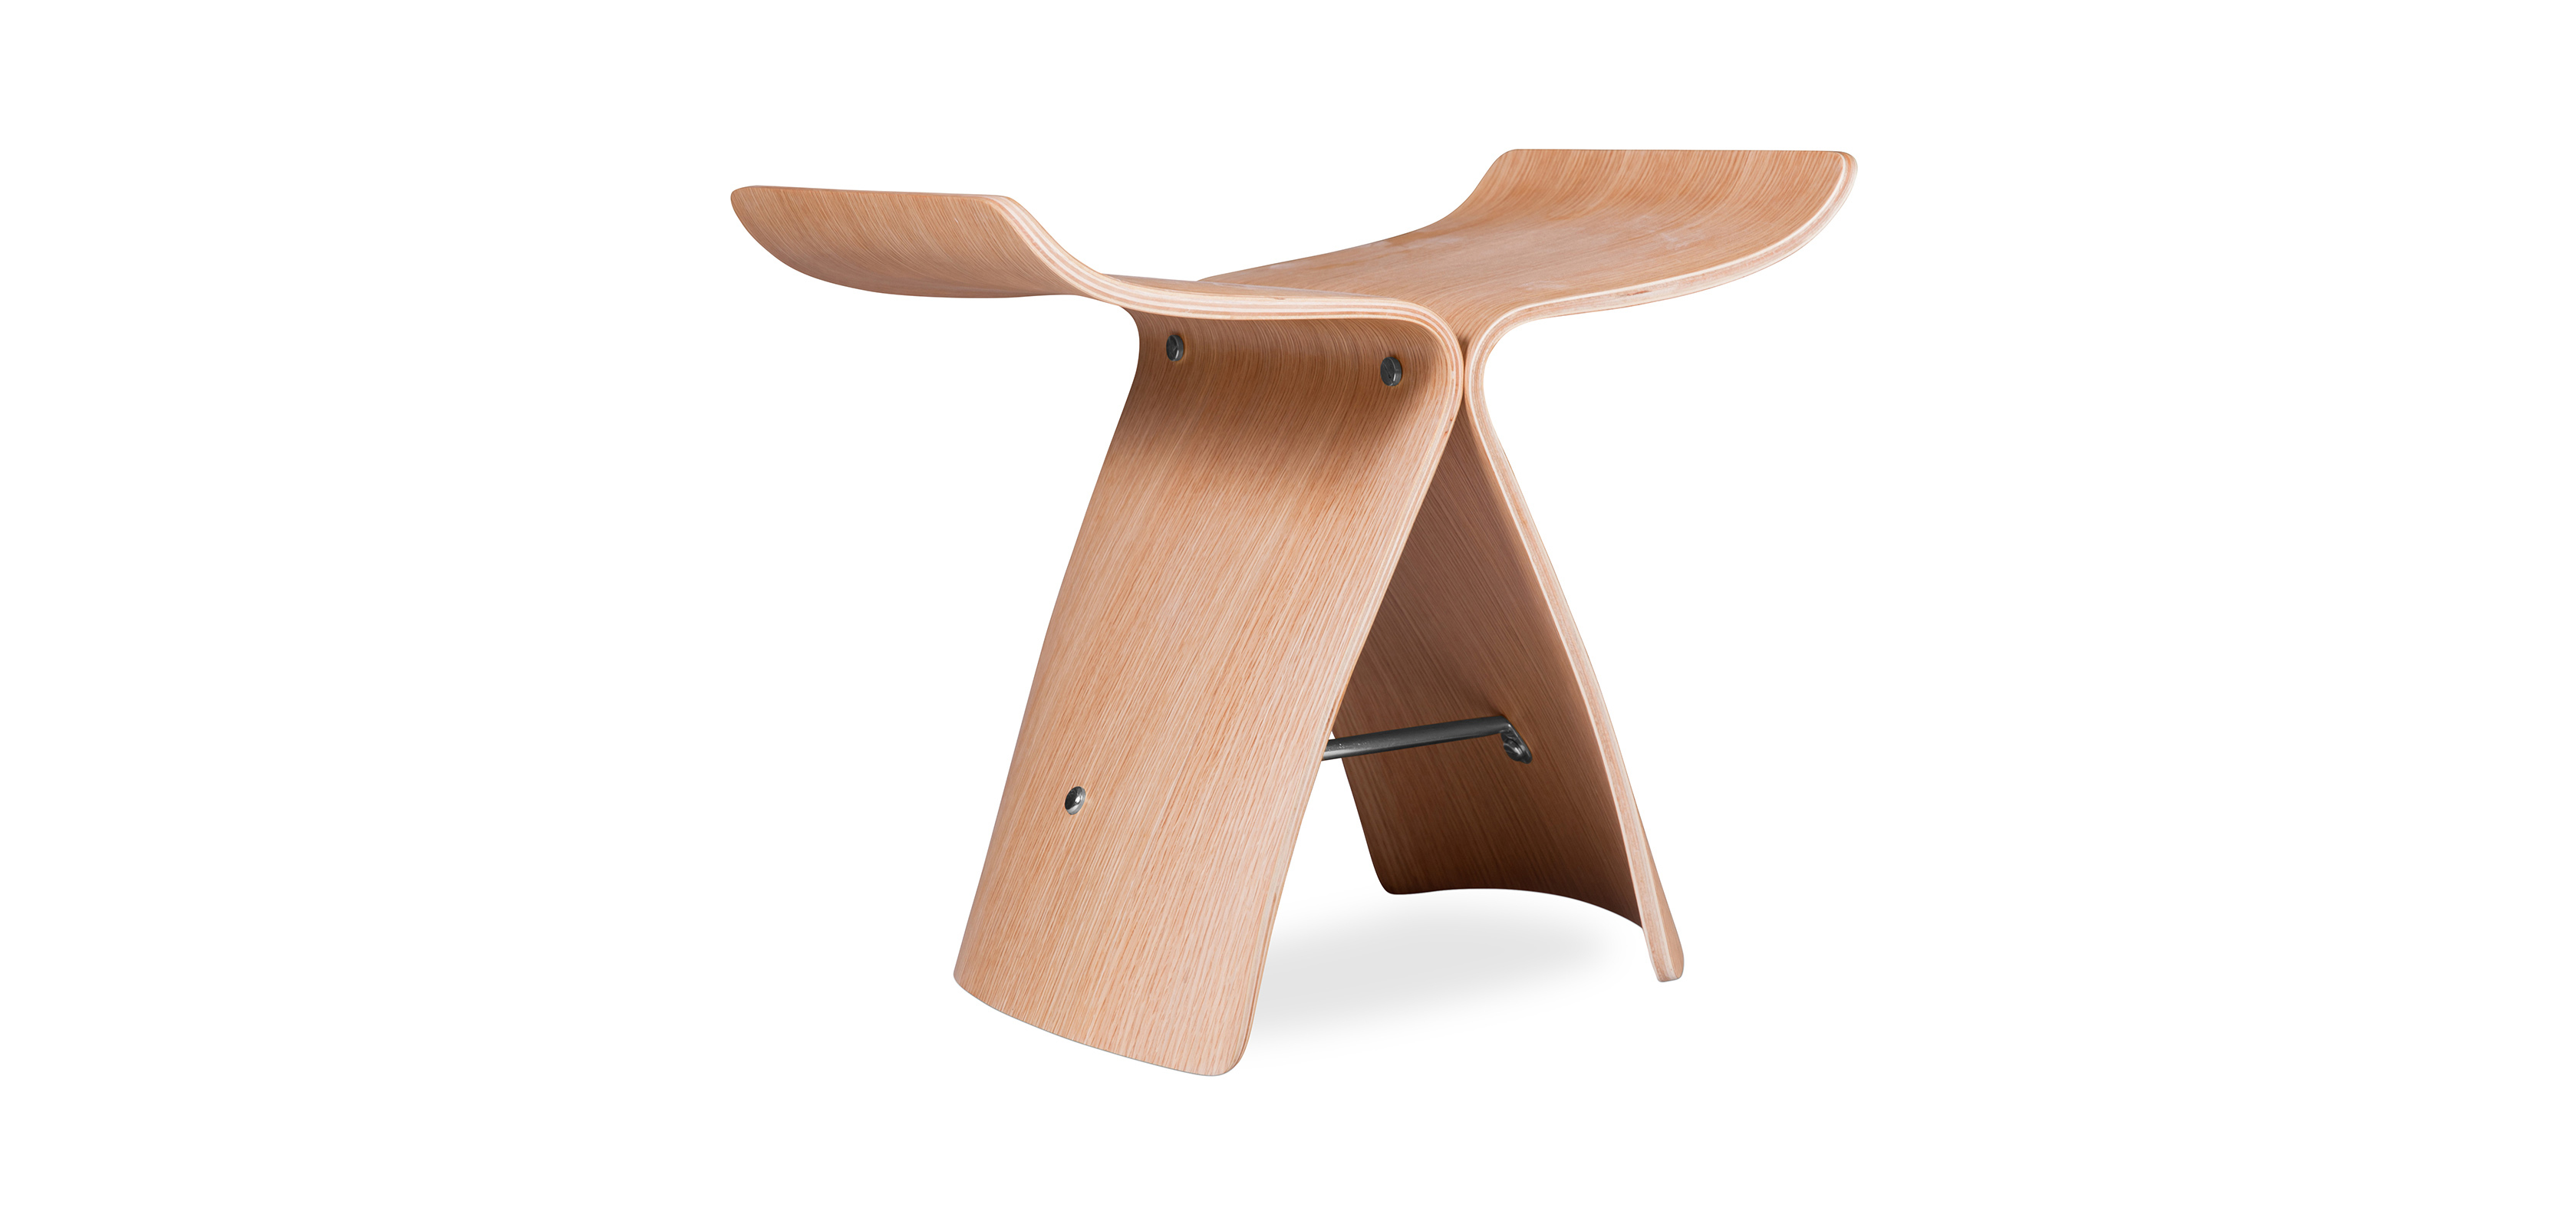 Buy Butterfly Stool Sori Yanagi  Style Natural wood 16833 - in the UK